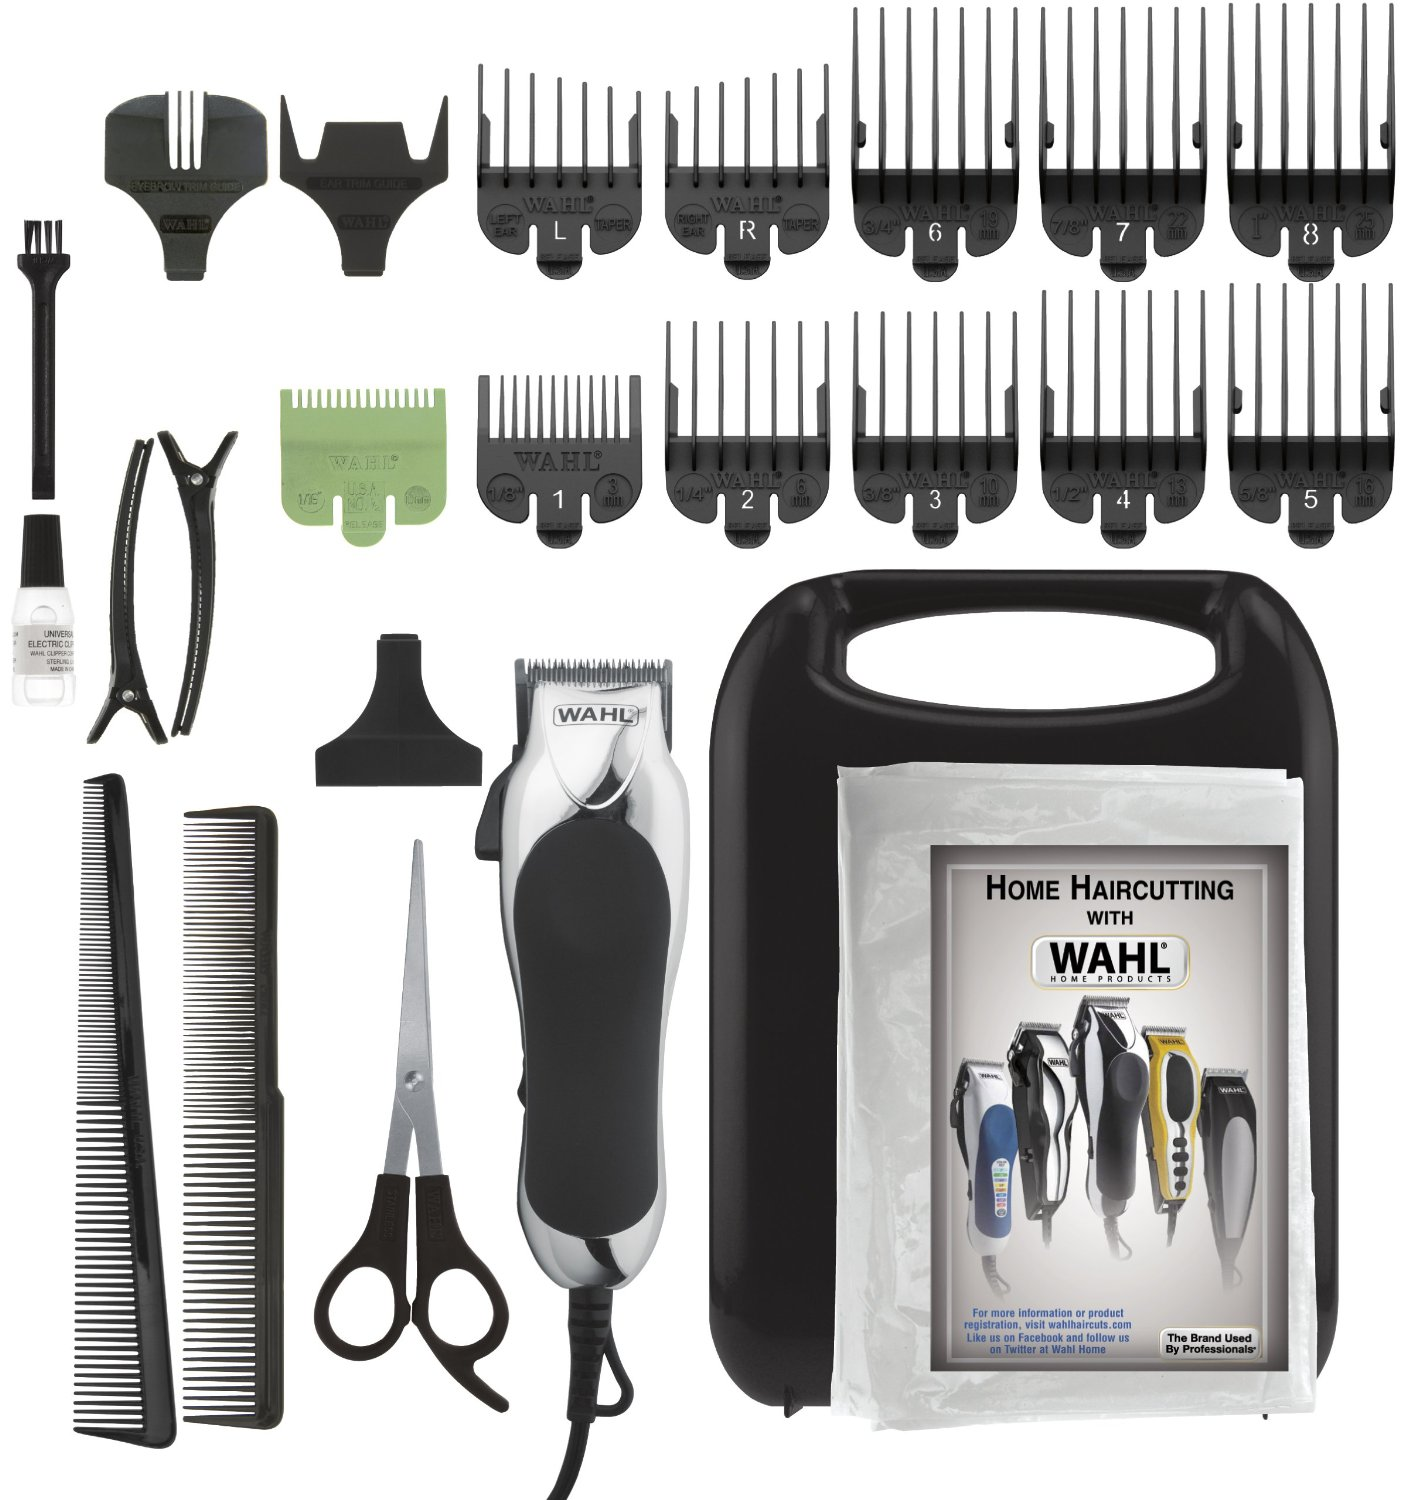 Hair Cutting Kits : Wahl Hair Cutting Sets Up to 50% off! Cut Your Boys Hair at Home and ...